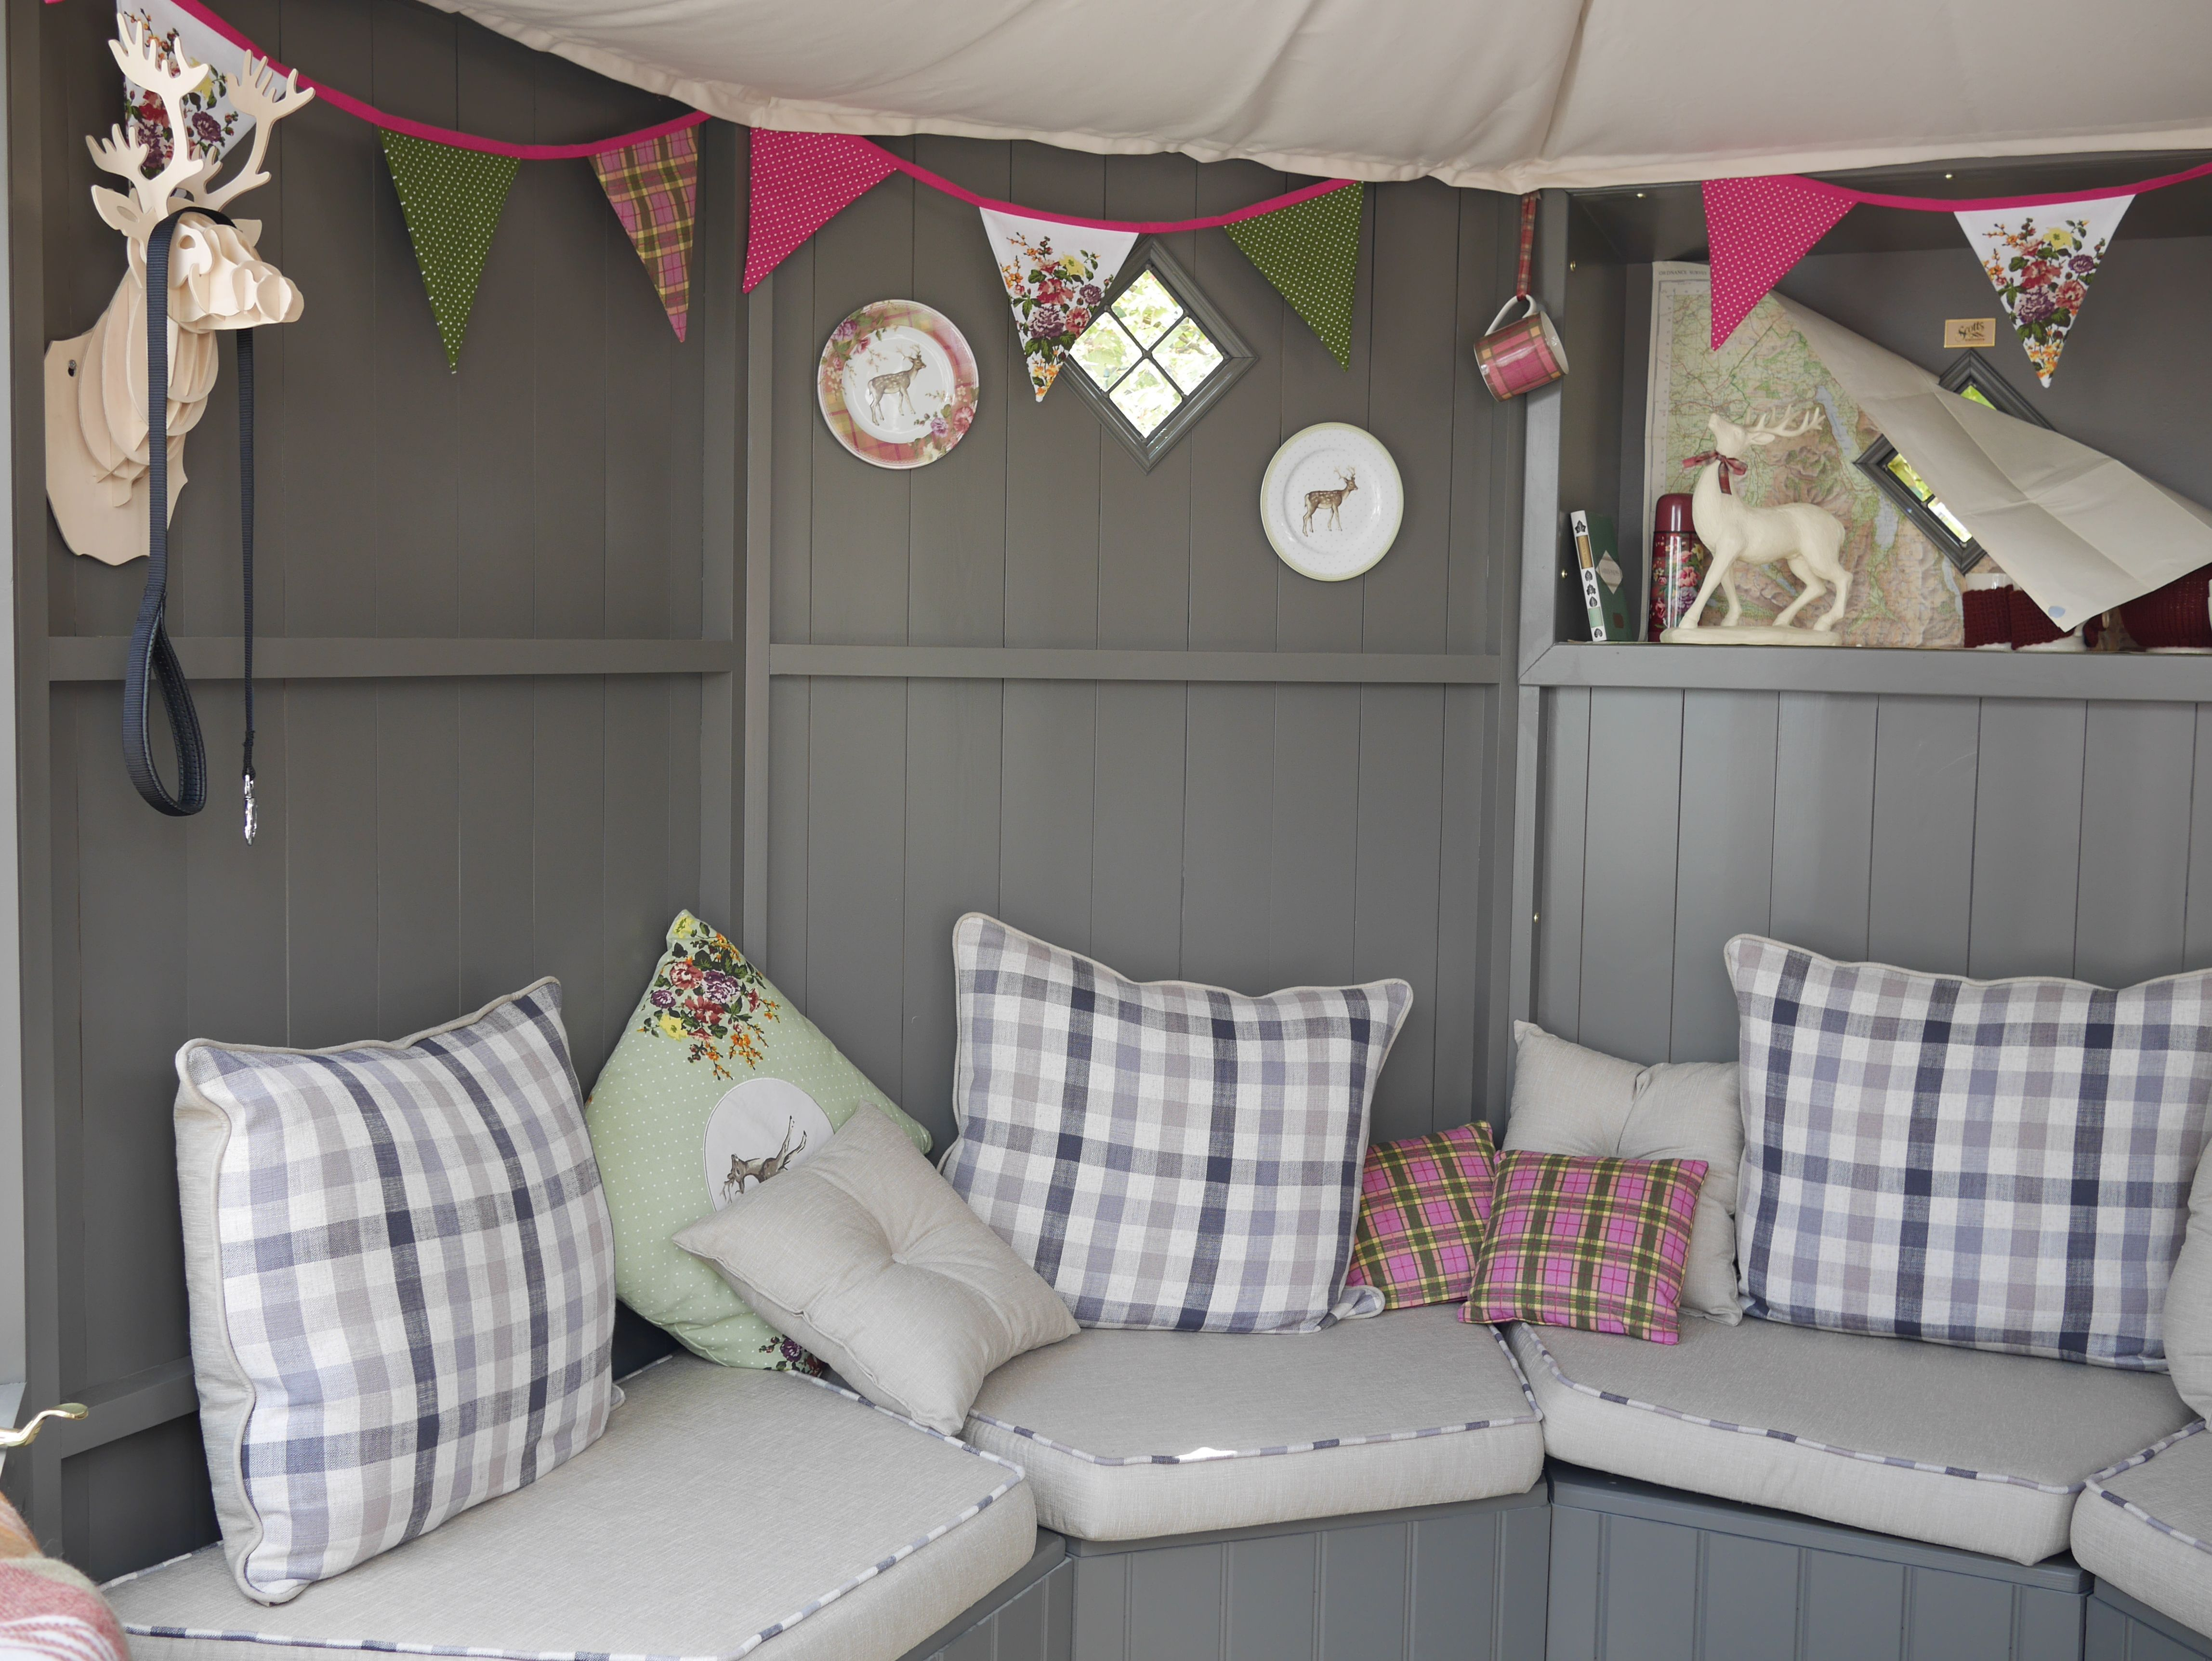 Pin By Frances Hampton On Summer House Small Summer House Summer House Summer House Interiors